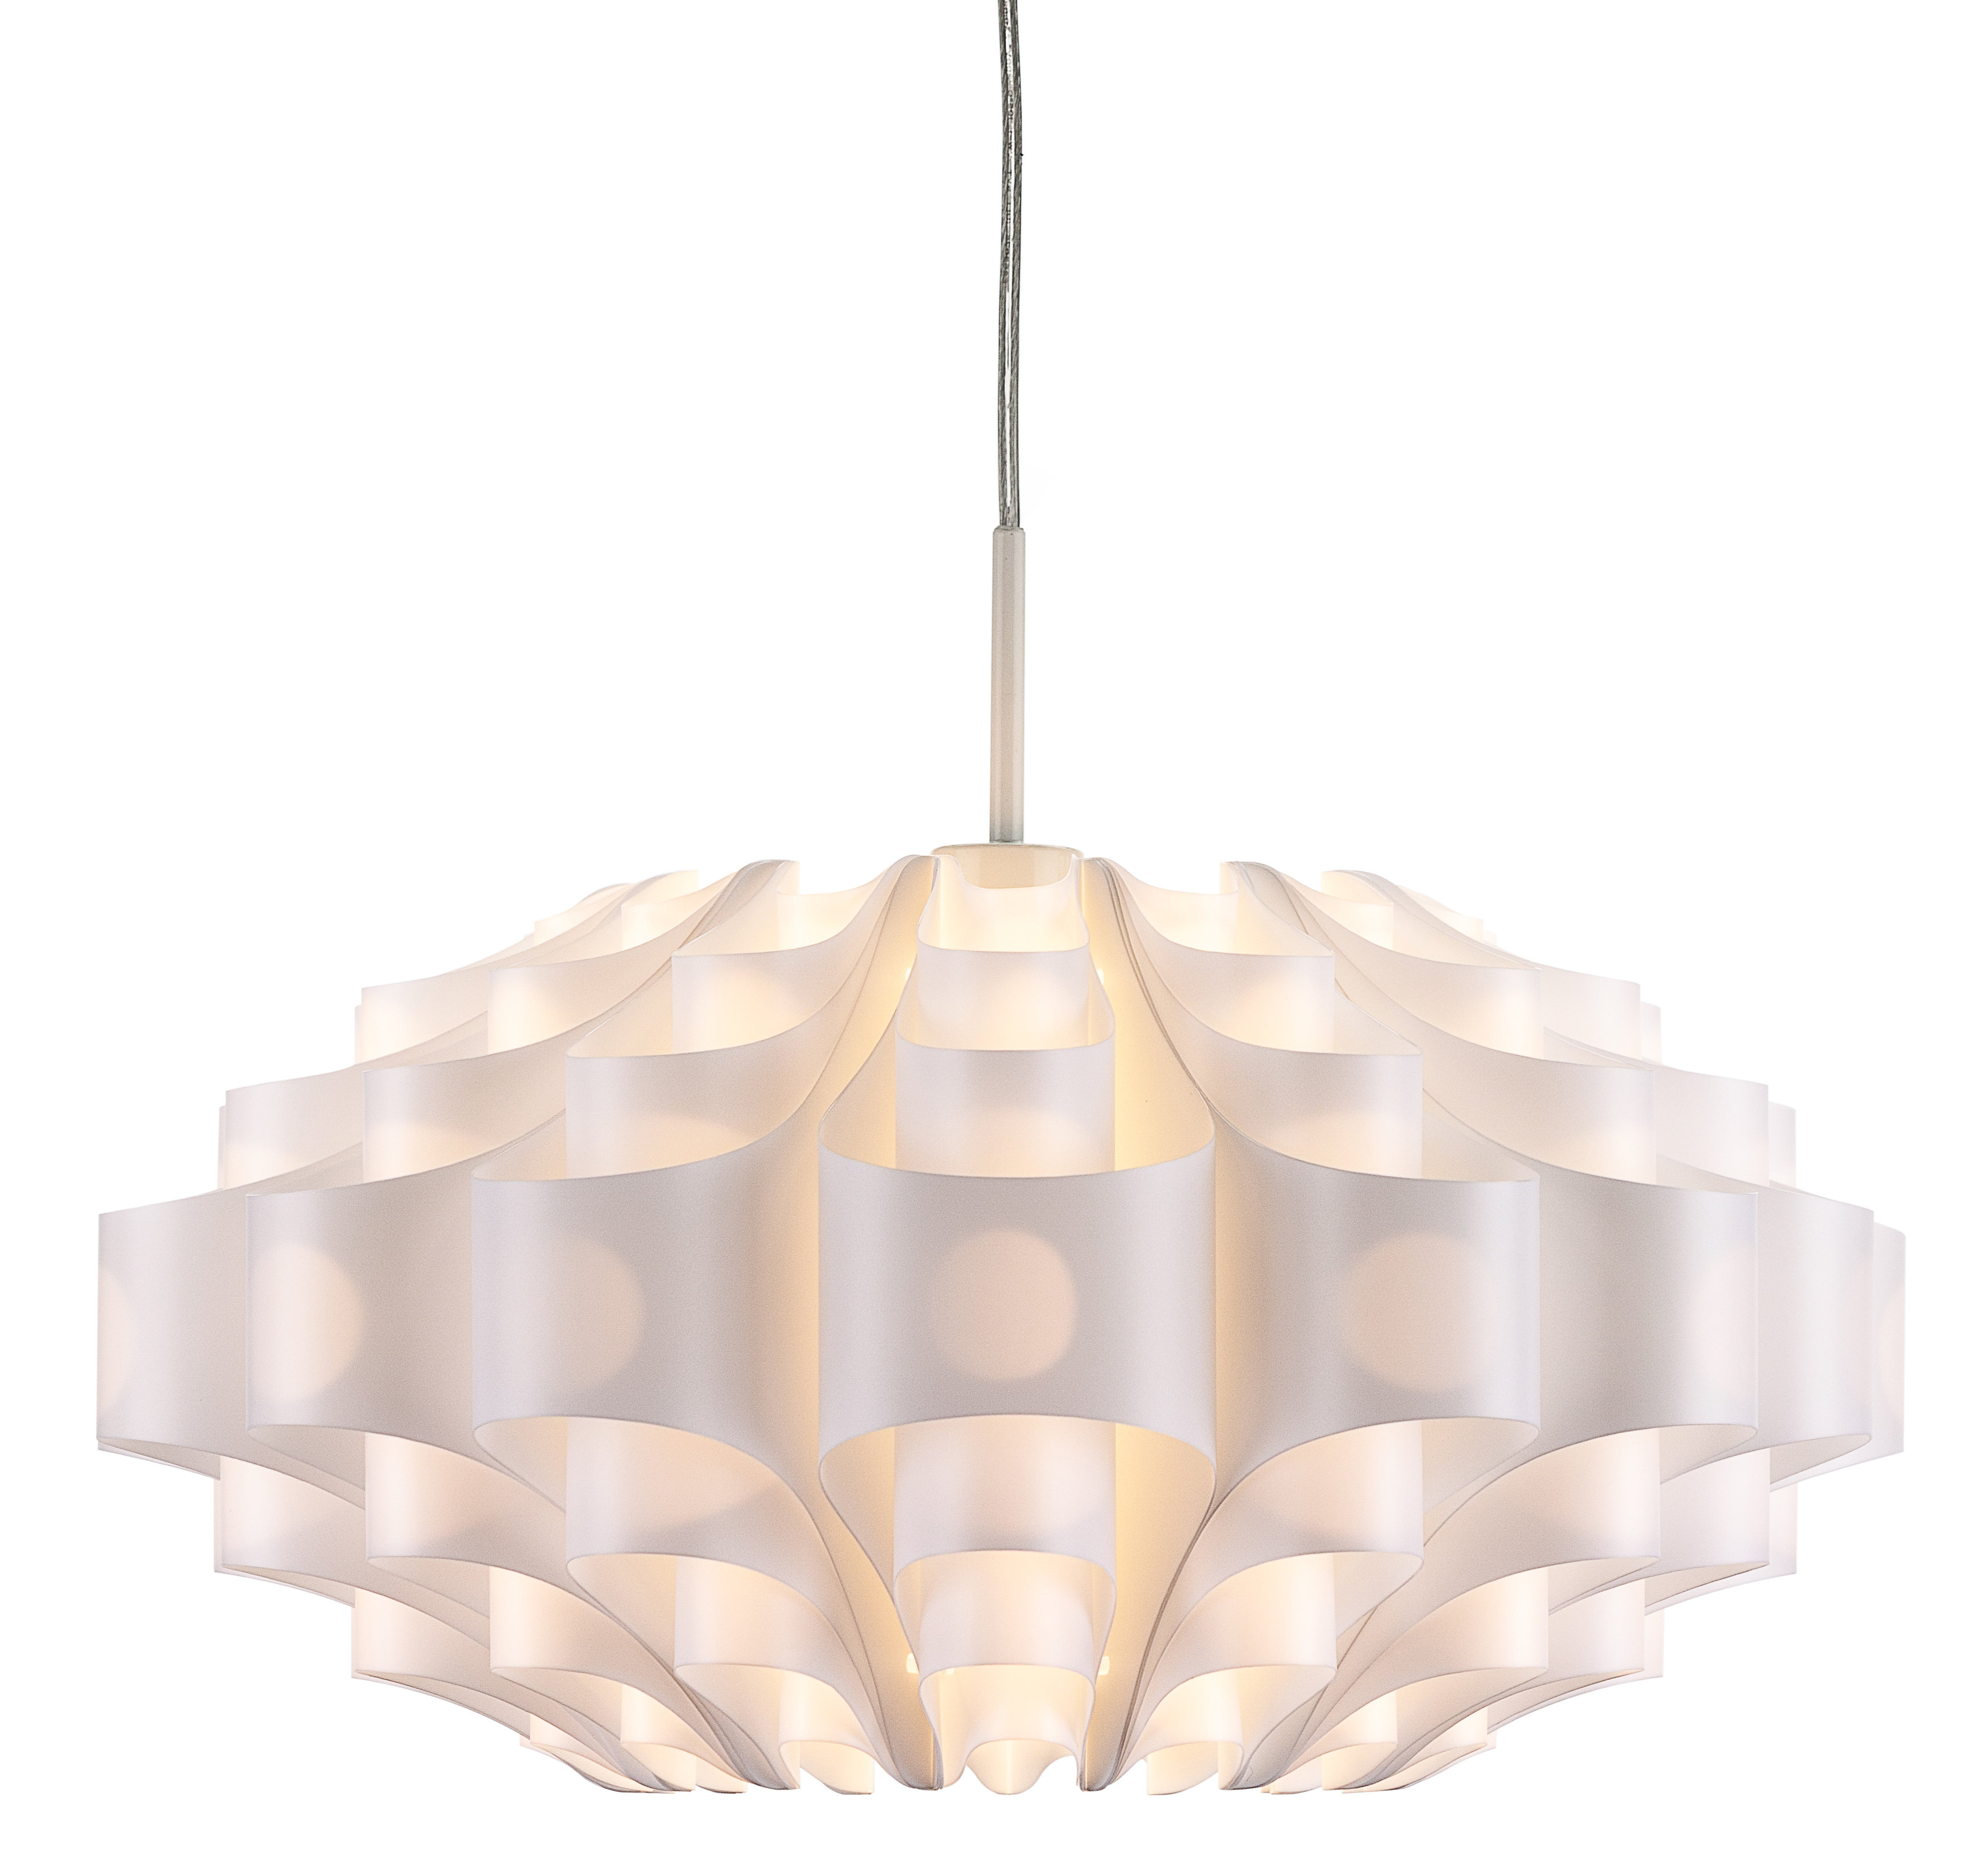 Melora 1 Light Single Geometric Pendants In Well Known Orb 1 Light Single Geometric Pendant (View 15 of 25)